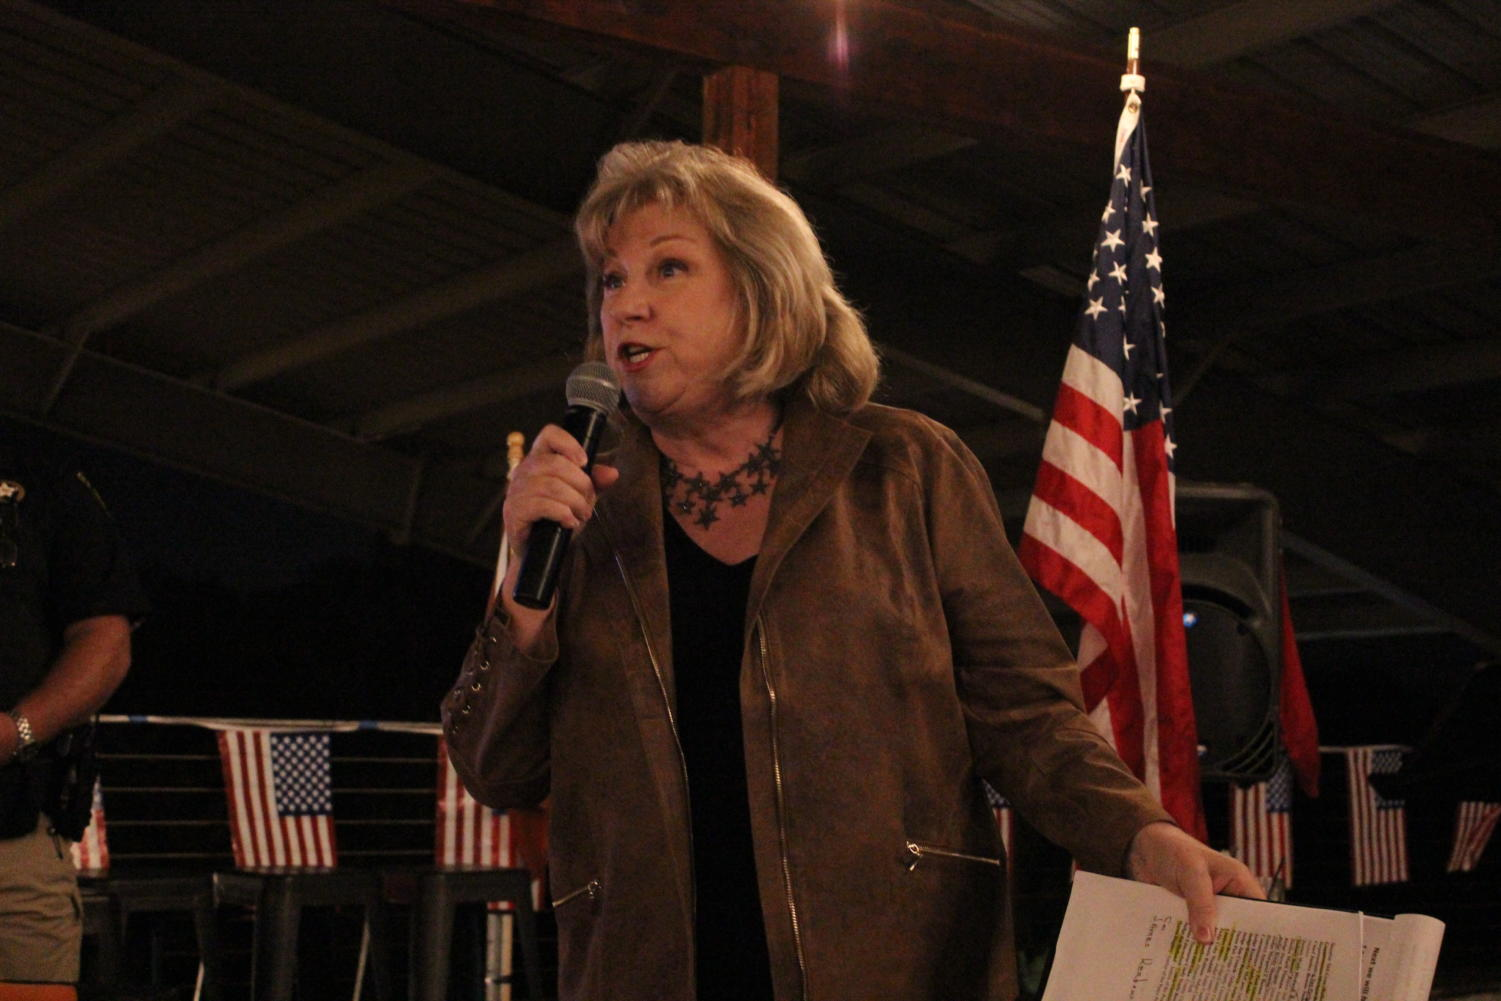 State Senator Jane Nelson spoke at the GOP meet and greet at Marty B's in Bartonville.